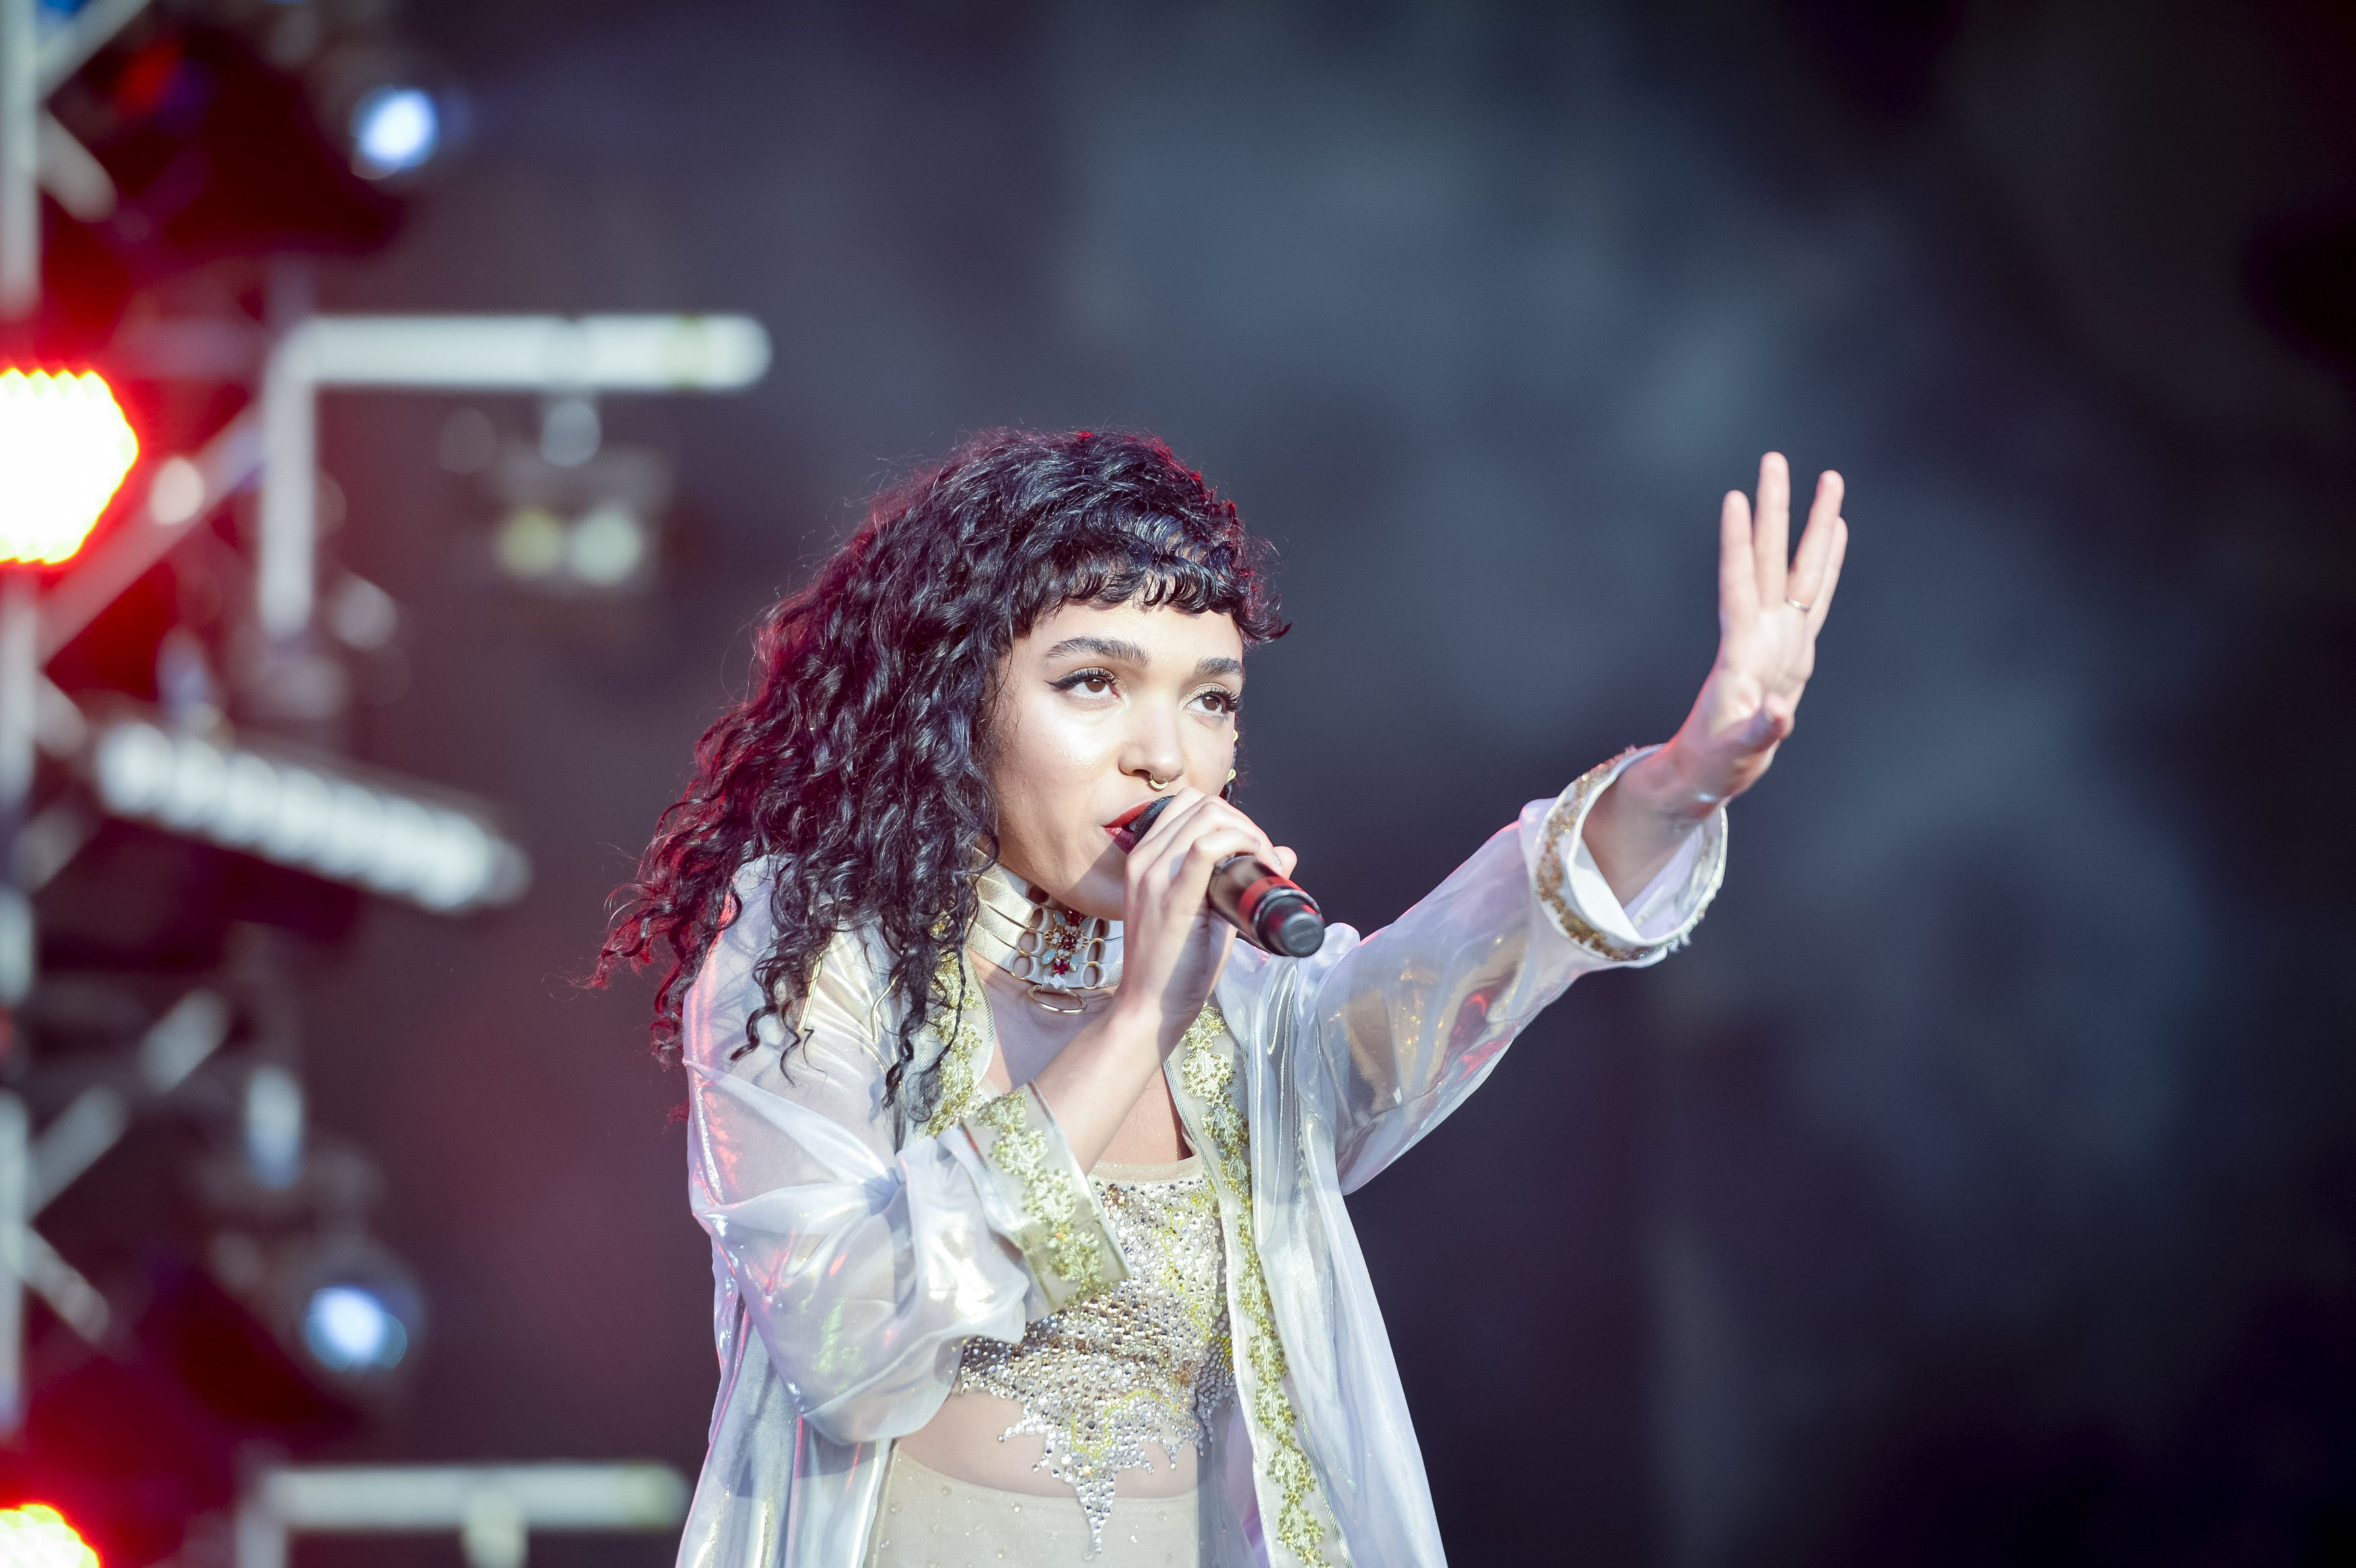 FKA Twigs Reveals She Had 6 Fibroid Tumors Removed